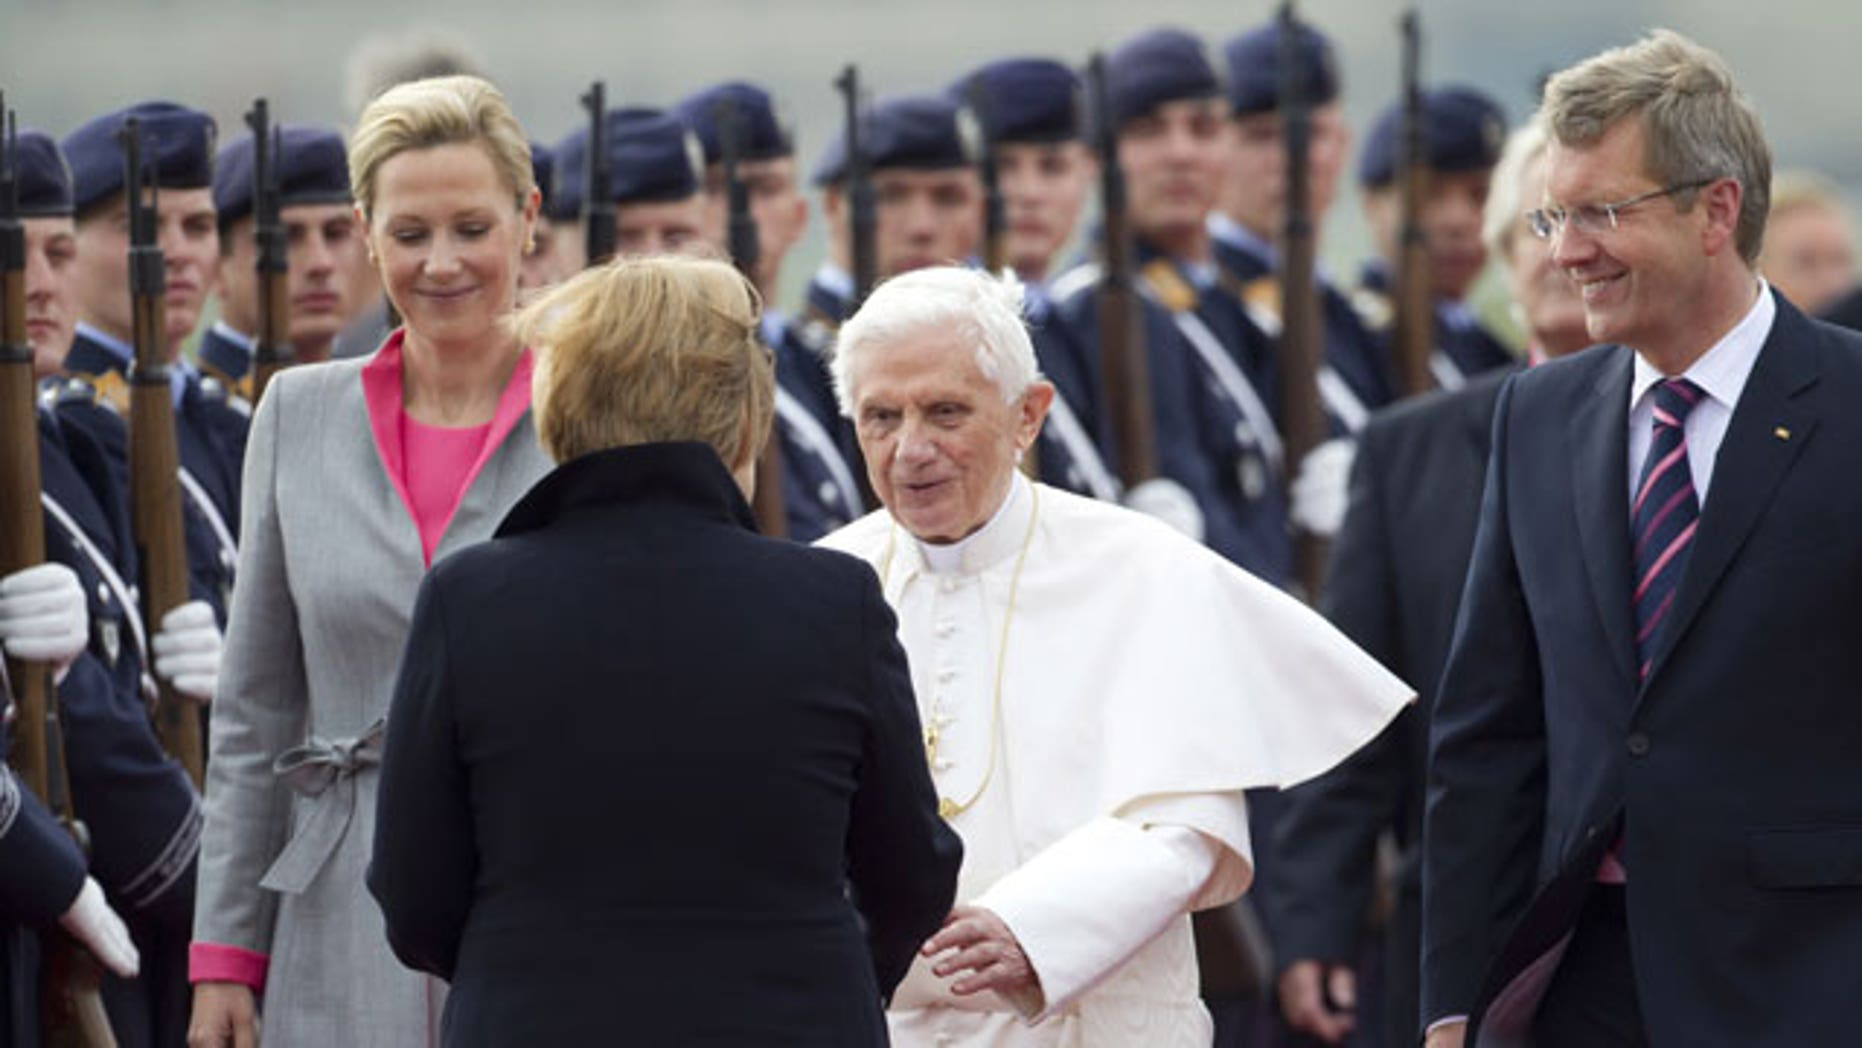 September 22: German Chancellor Angela Merkel, front, welcomes Pope Benedict XVI, center, after his arrival at the Tegel airport in Berlin, Germany.